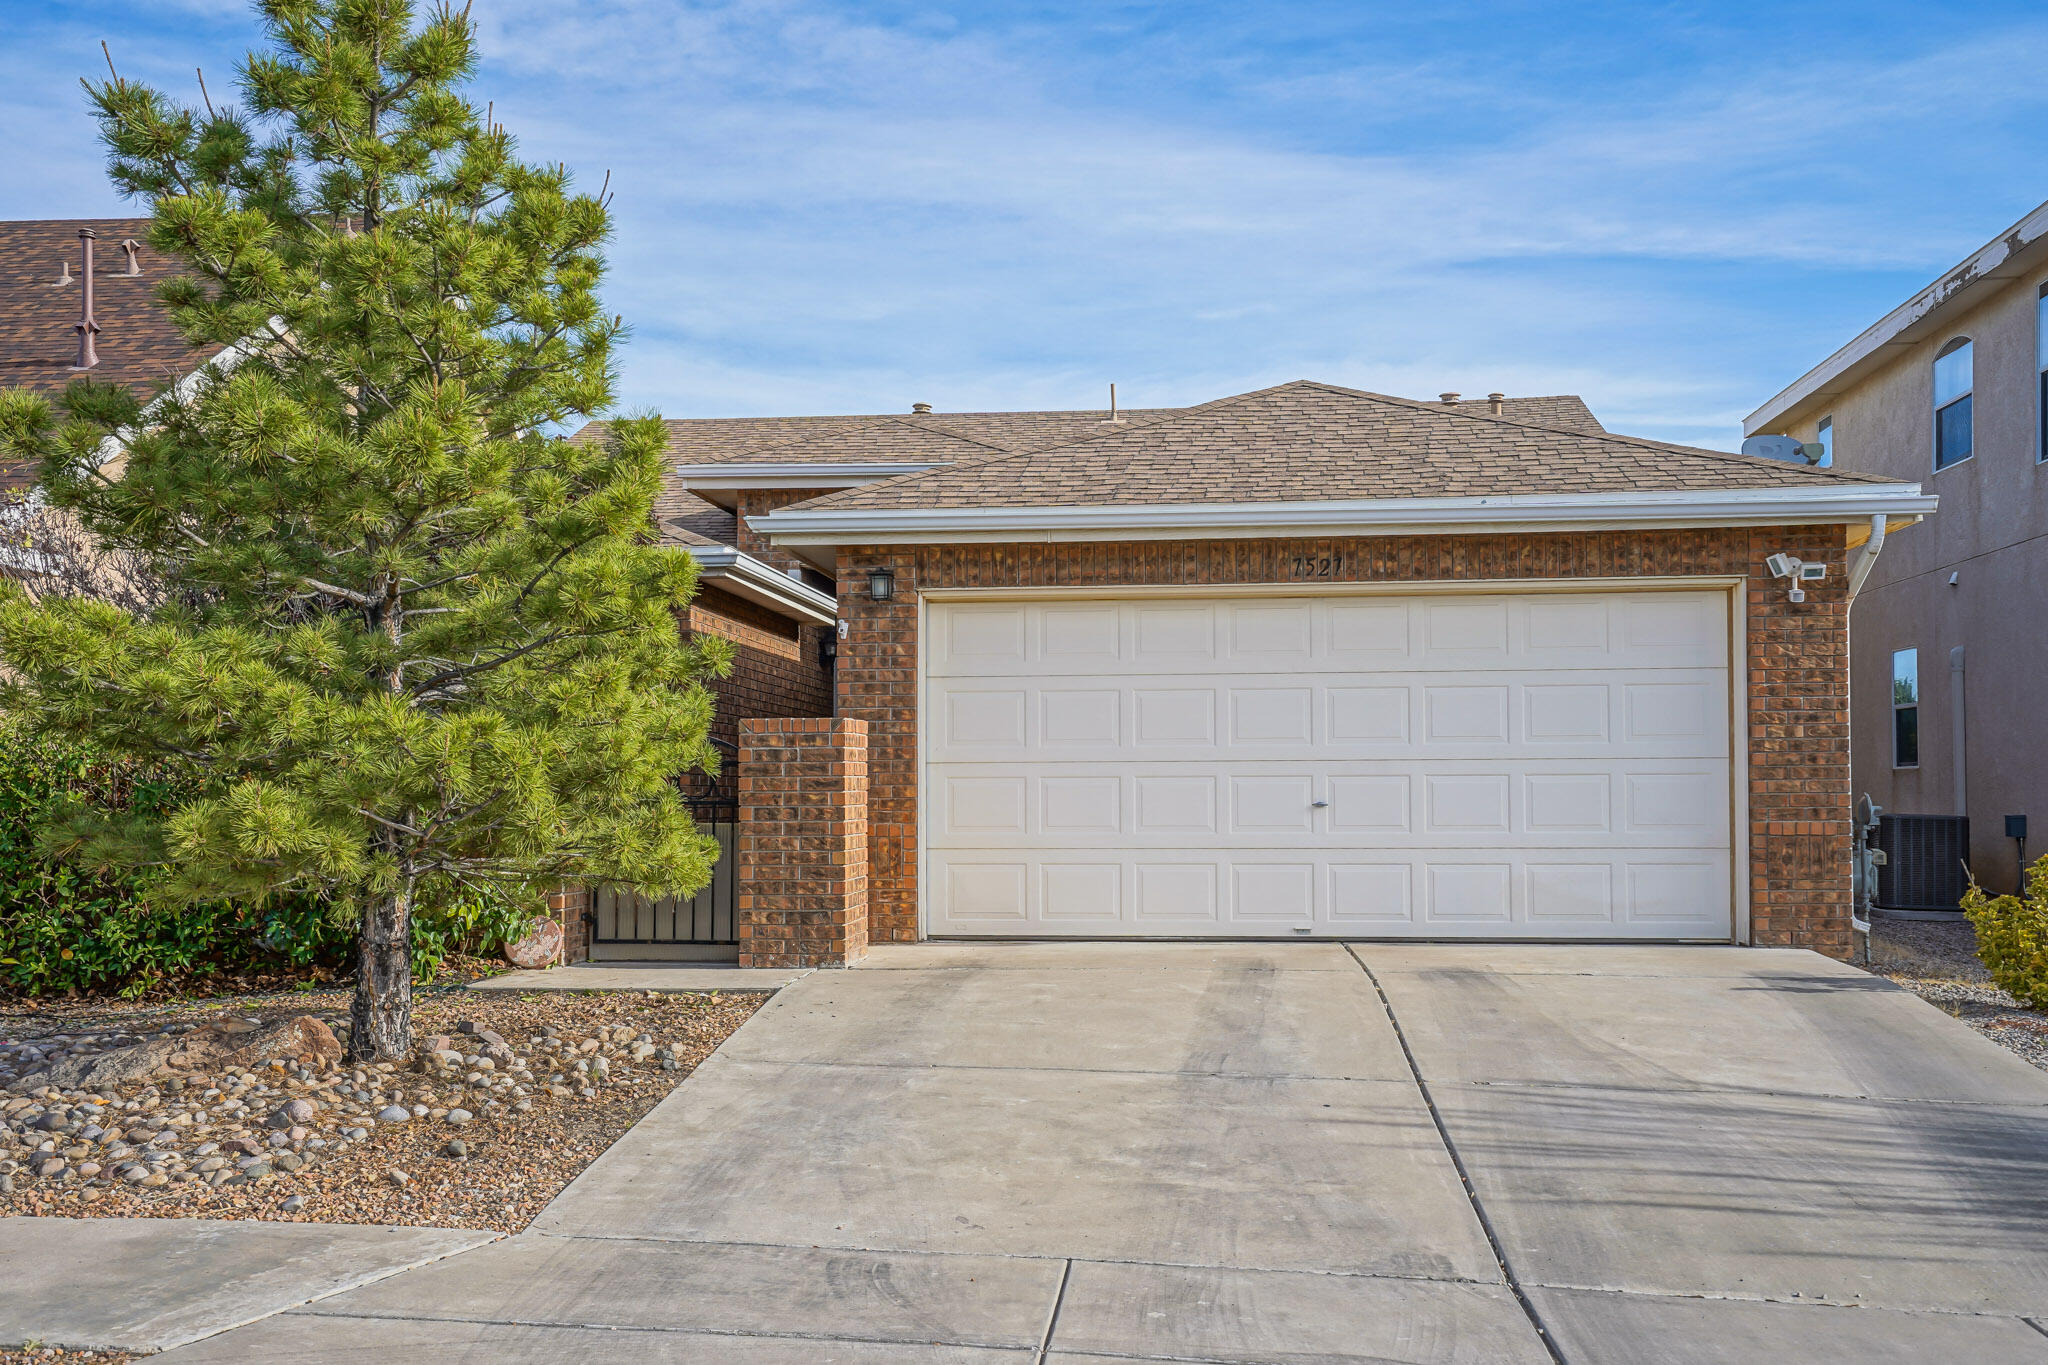 Check out this Well kept single story home located in the highly desirable Ventana Ranch neighborhood! This beautiful home has plenty of curb appeal and is located towards the end of a dead end street!! Walk into this bright open floor plan and enjoy the new paint, and flooring throughout! You will be nice and cozy this winter enjoying the new furnace that was installed in 2020. The master suite offers a full bath and large closet!!! This property will not last long!!! Call your realtor today to set up a private showing!